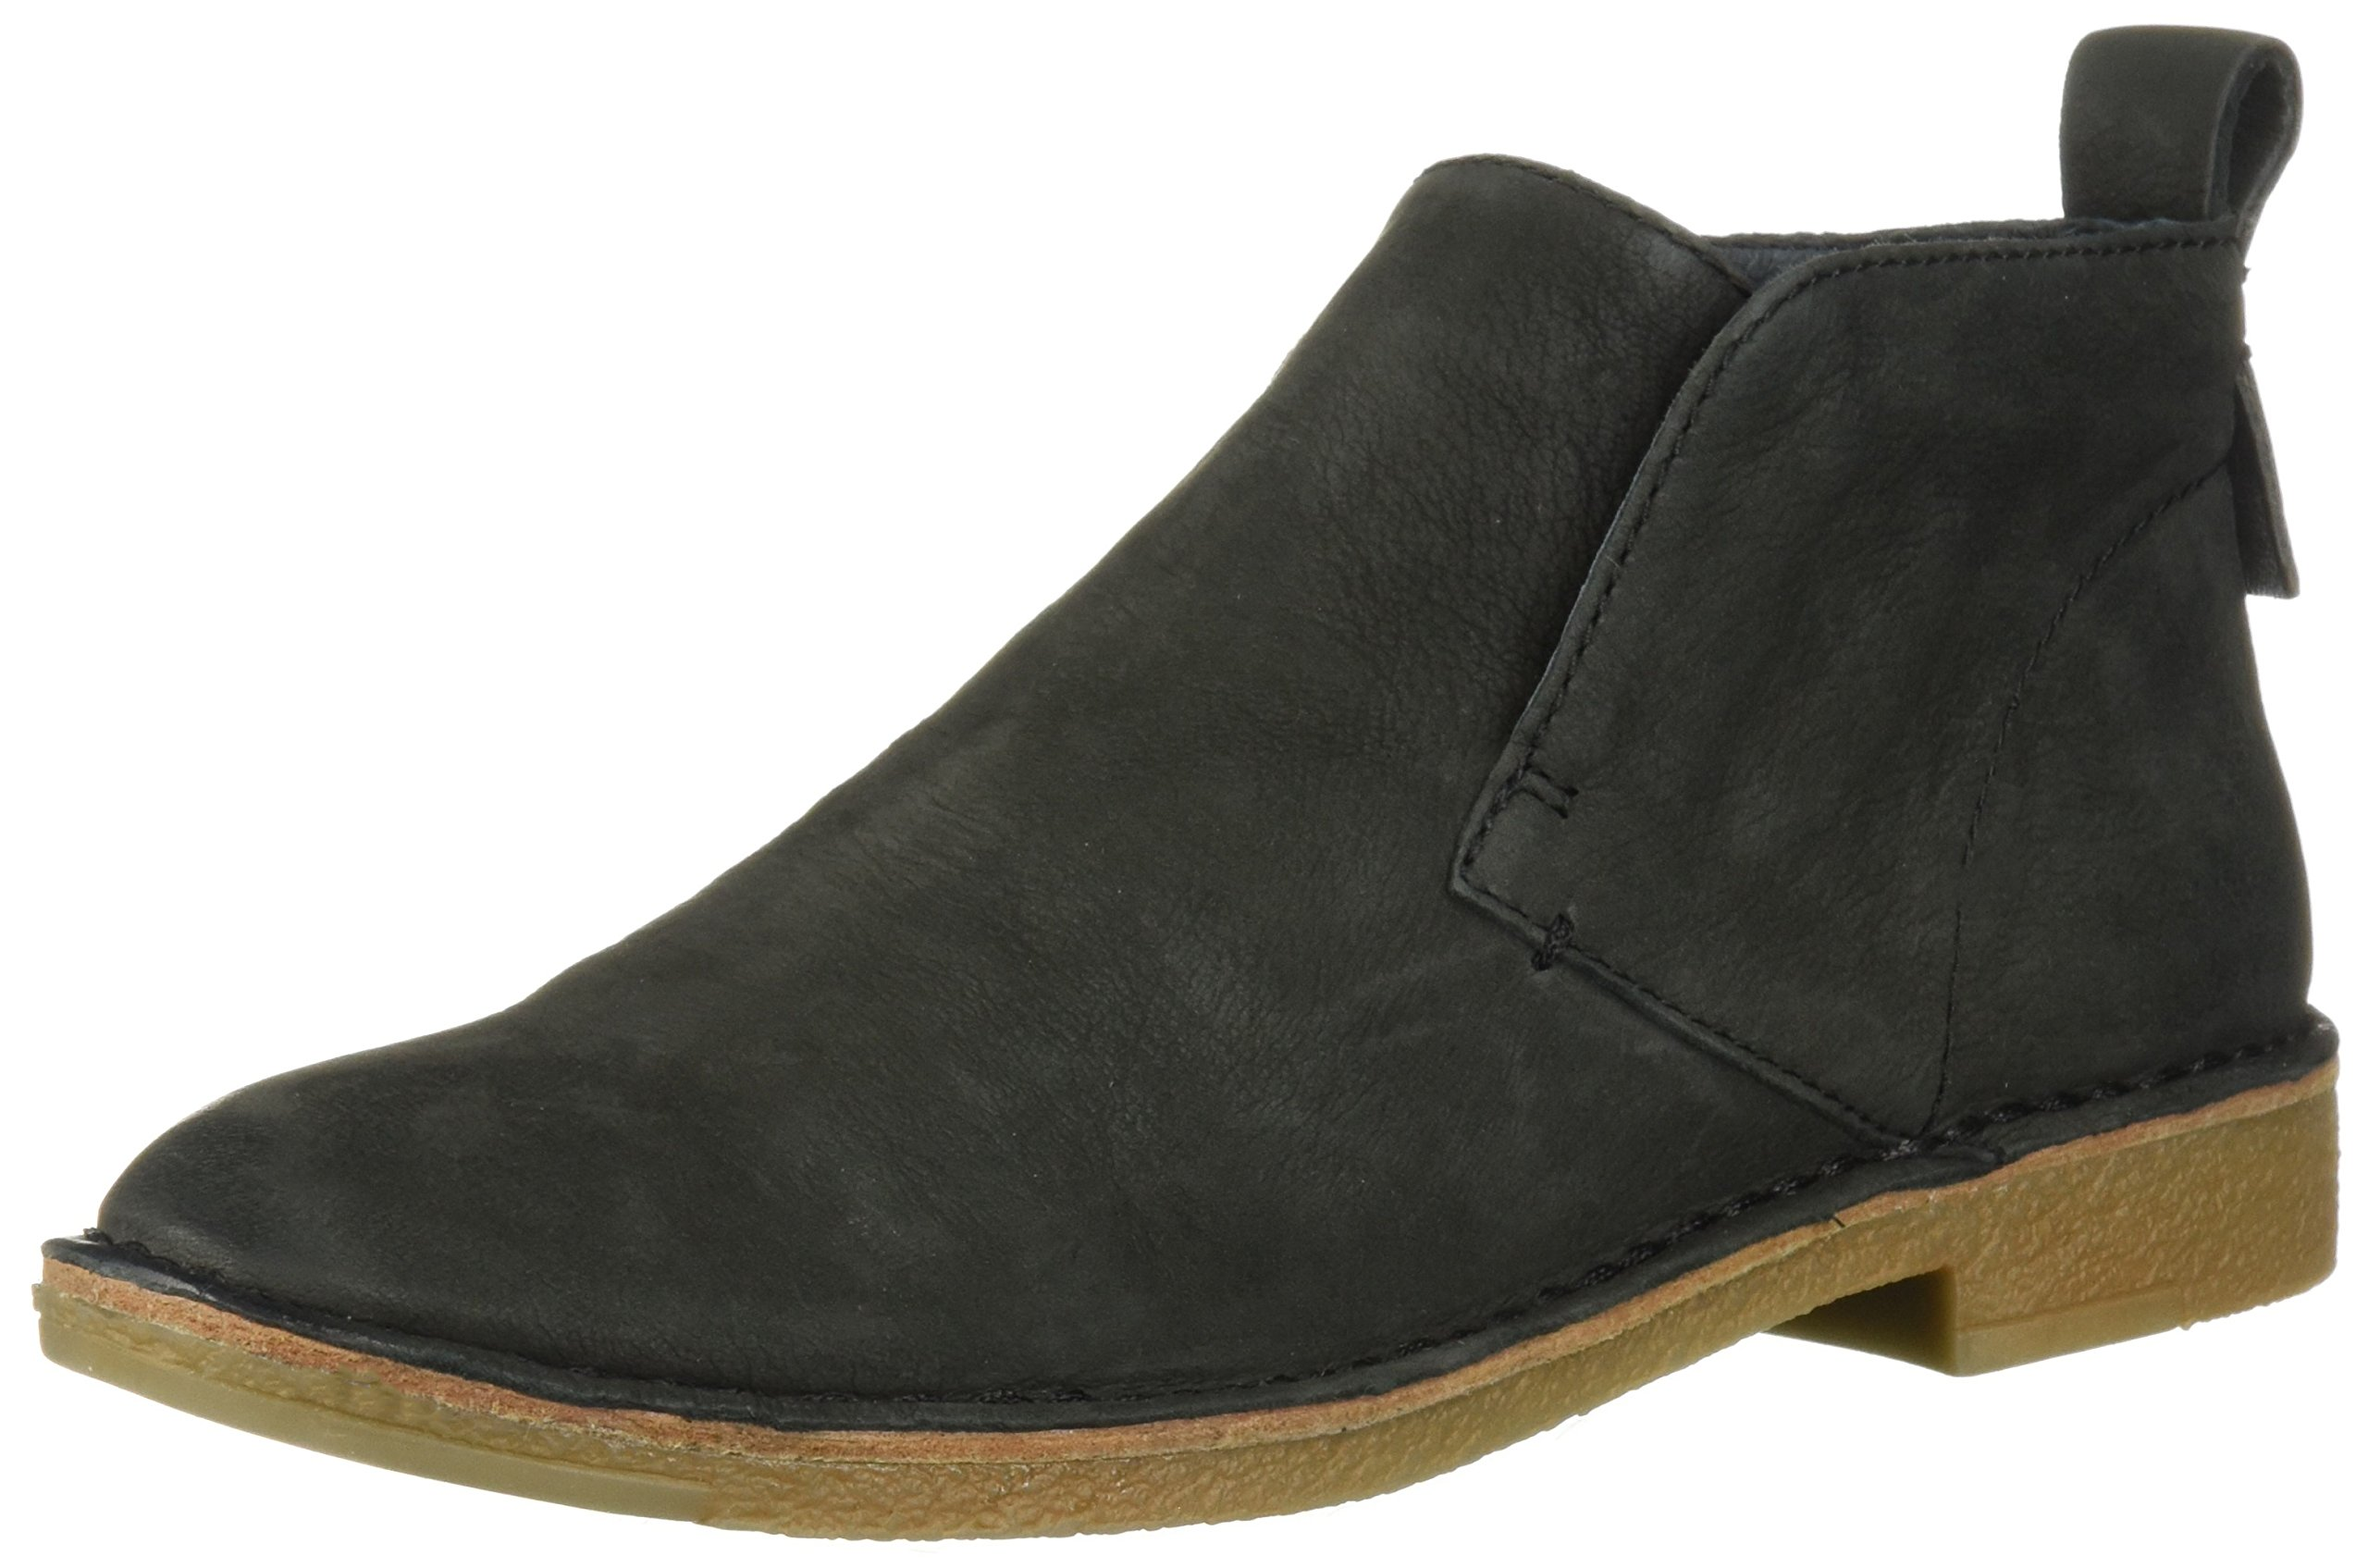 Dolce Vita Women's Findley Boot,Anthracite,6.5 M US